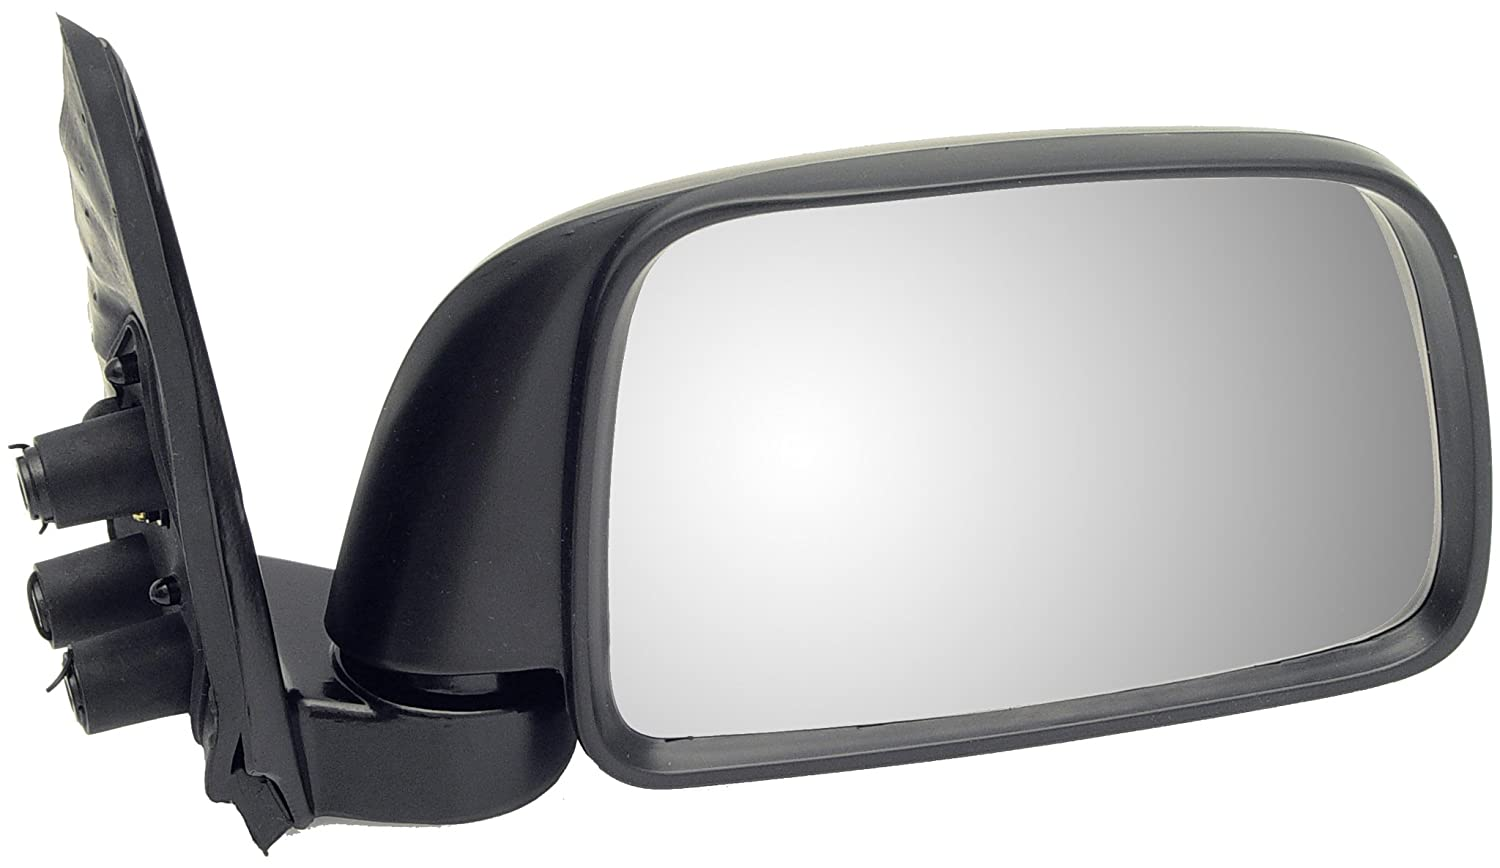 Dorman 955-450 Toyota Tacoma Manual Replacement Passenger Side Mirror